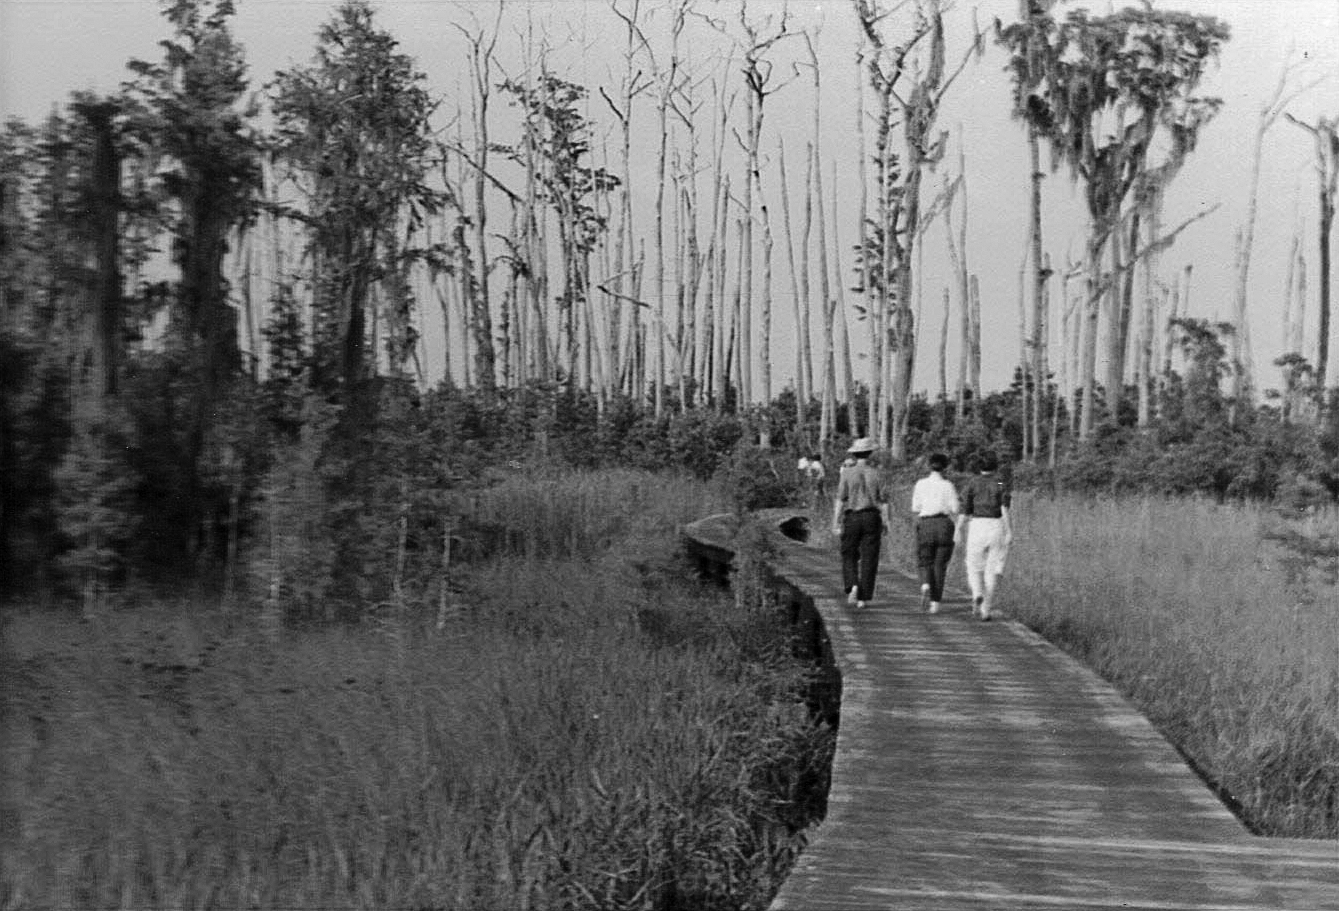 Boardwalk in 1969